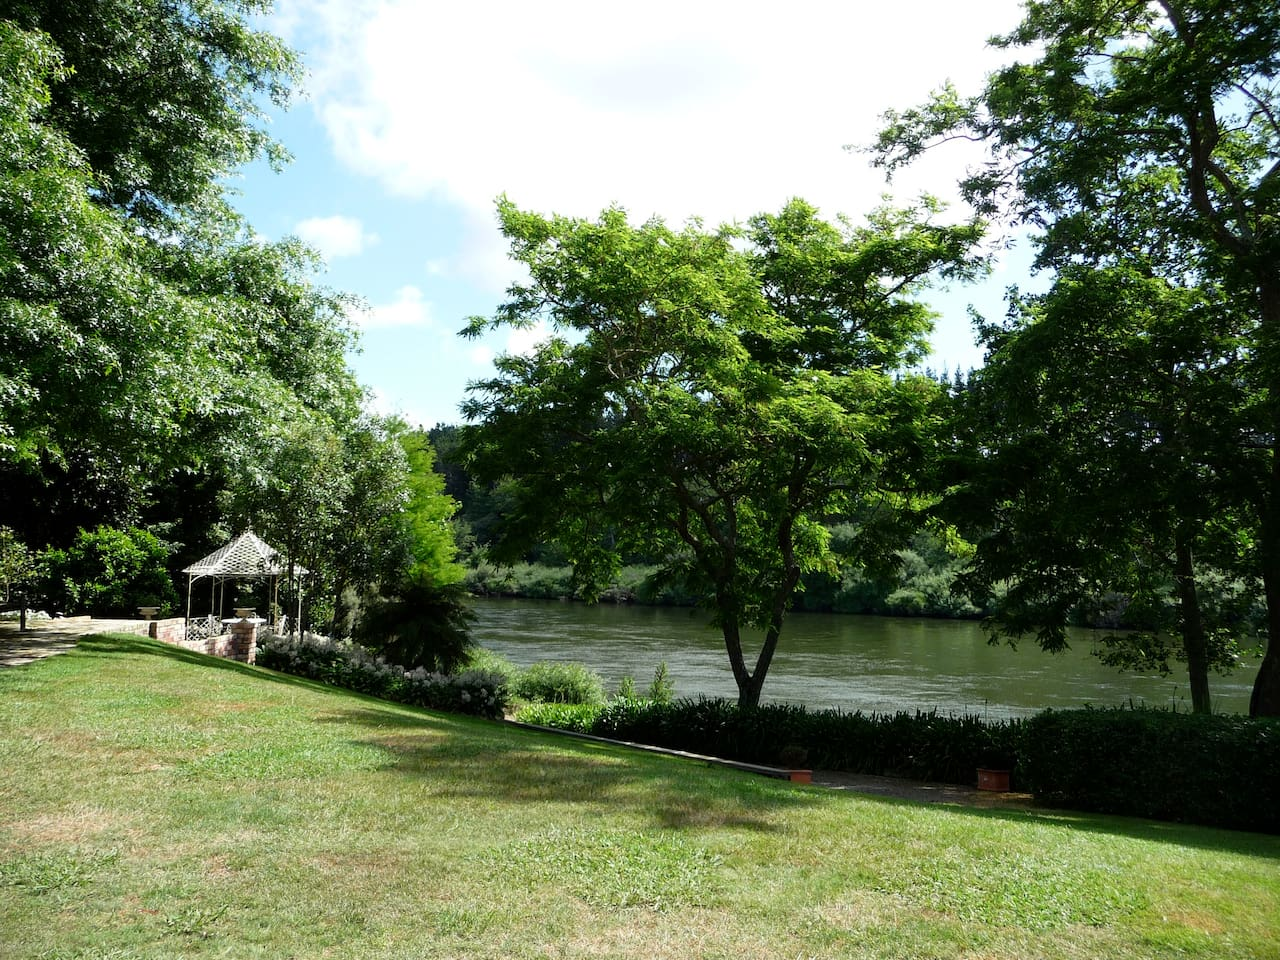 The Waikato River runs passed the property, there is a grassed area, where you can sit and enjoy the tranquility of the River.  There is a aerial photo included in the photos that shows you where the boatshed is situated on the property.